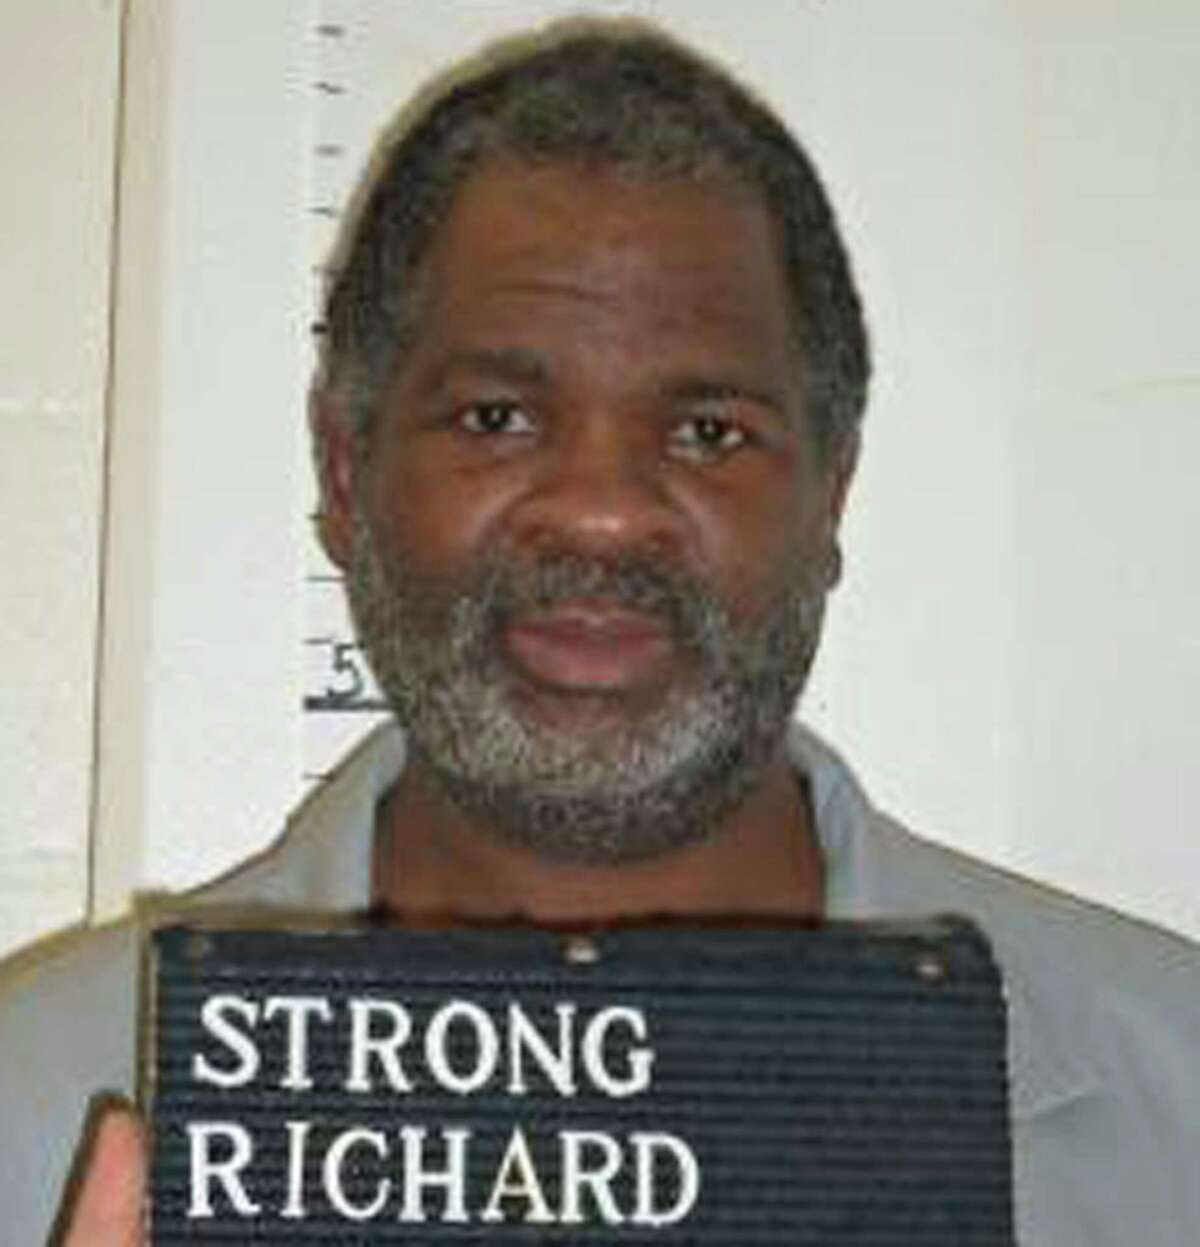 This Feb. 9, 2014 photo provided by the Missouri Department of Corrections shows Missouri death row inmate Richard Strong. Strong was convicted of fatally stabbing his girlfriend and her 2-year-old daughter 15 years ago in suburban St. Louis.